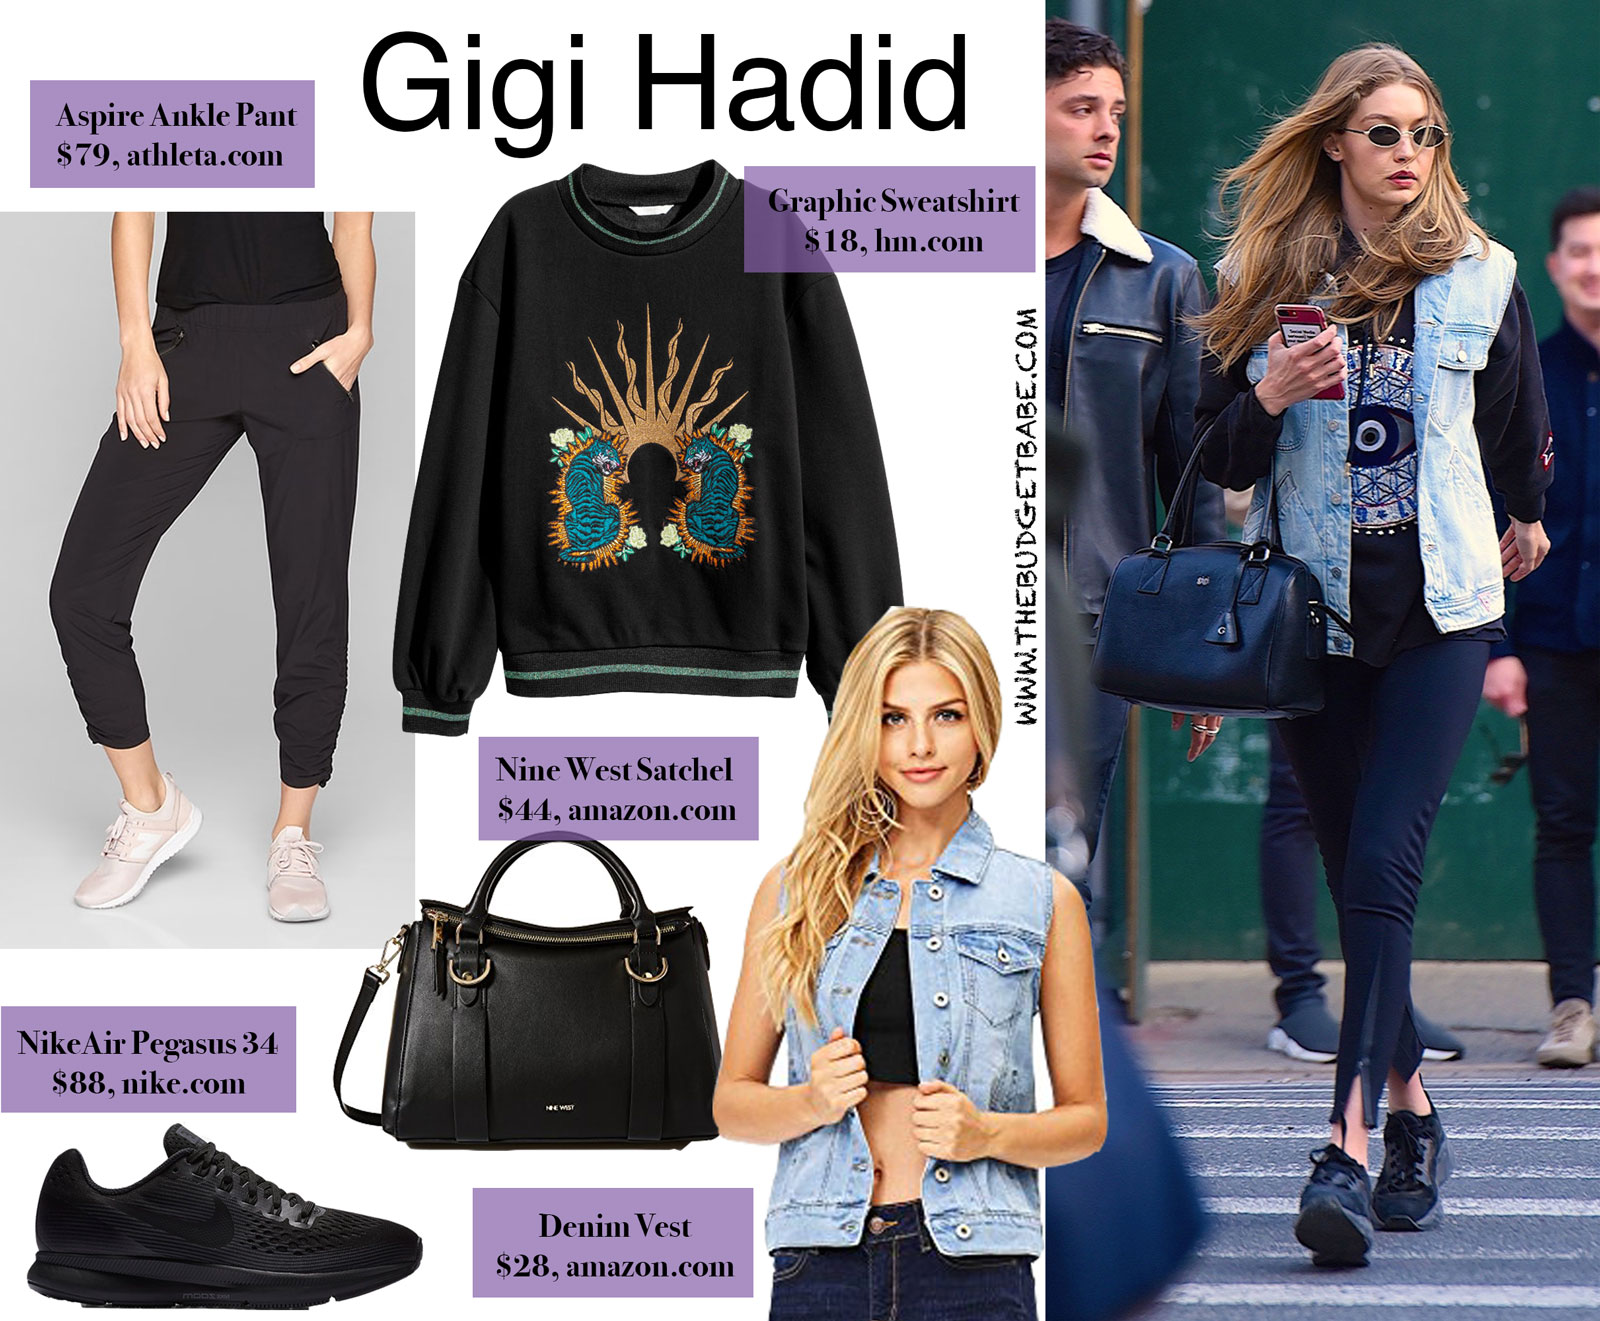 Gigi Hadid's Denim Vest and Graphic Sweatshirt